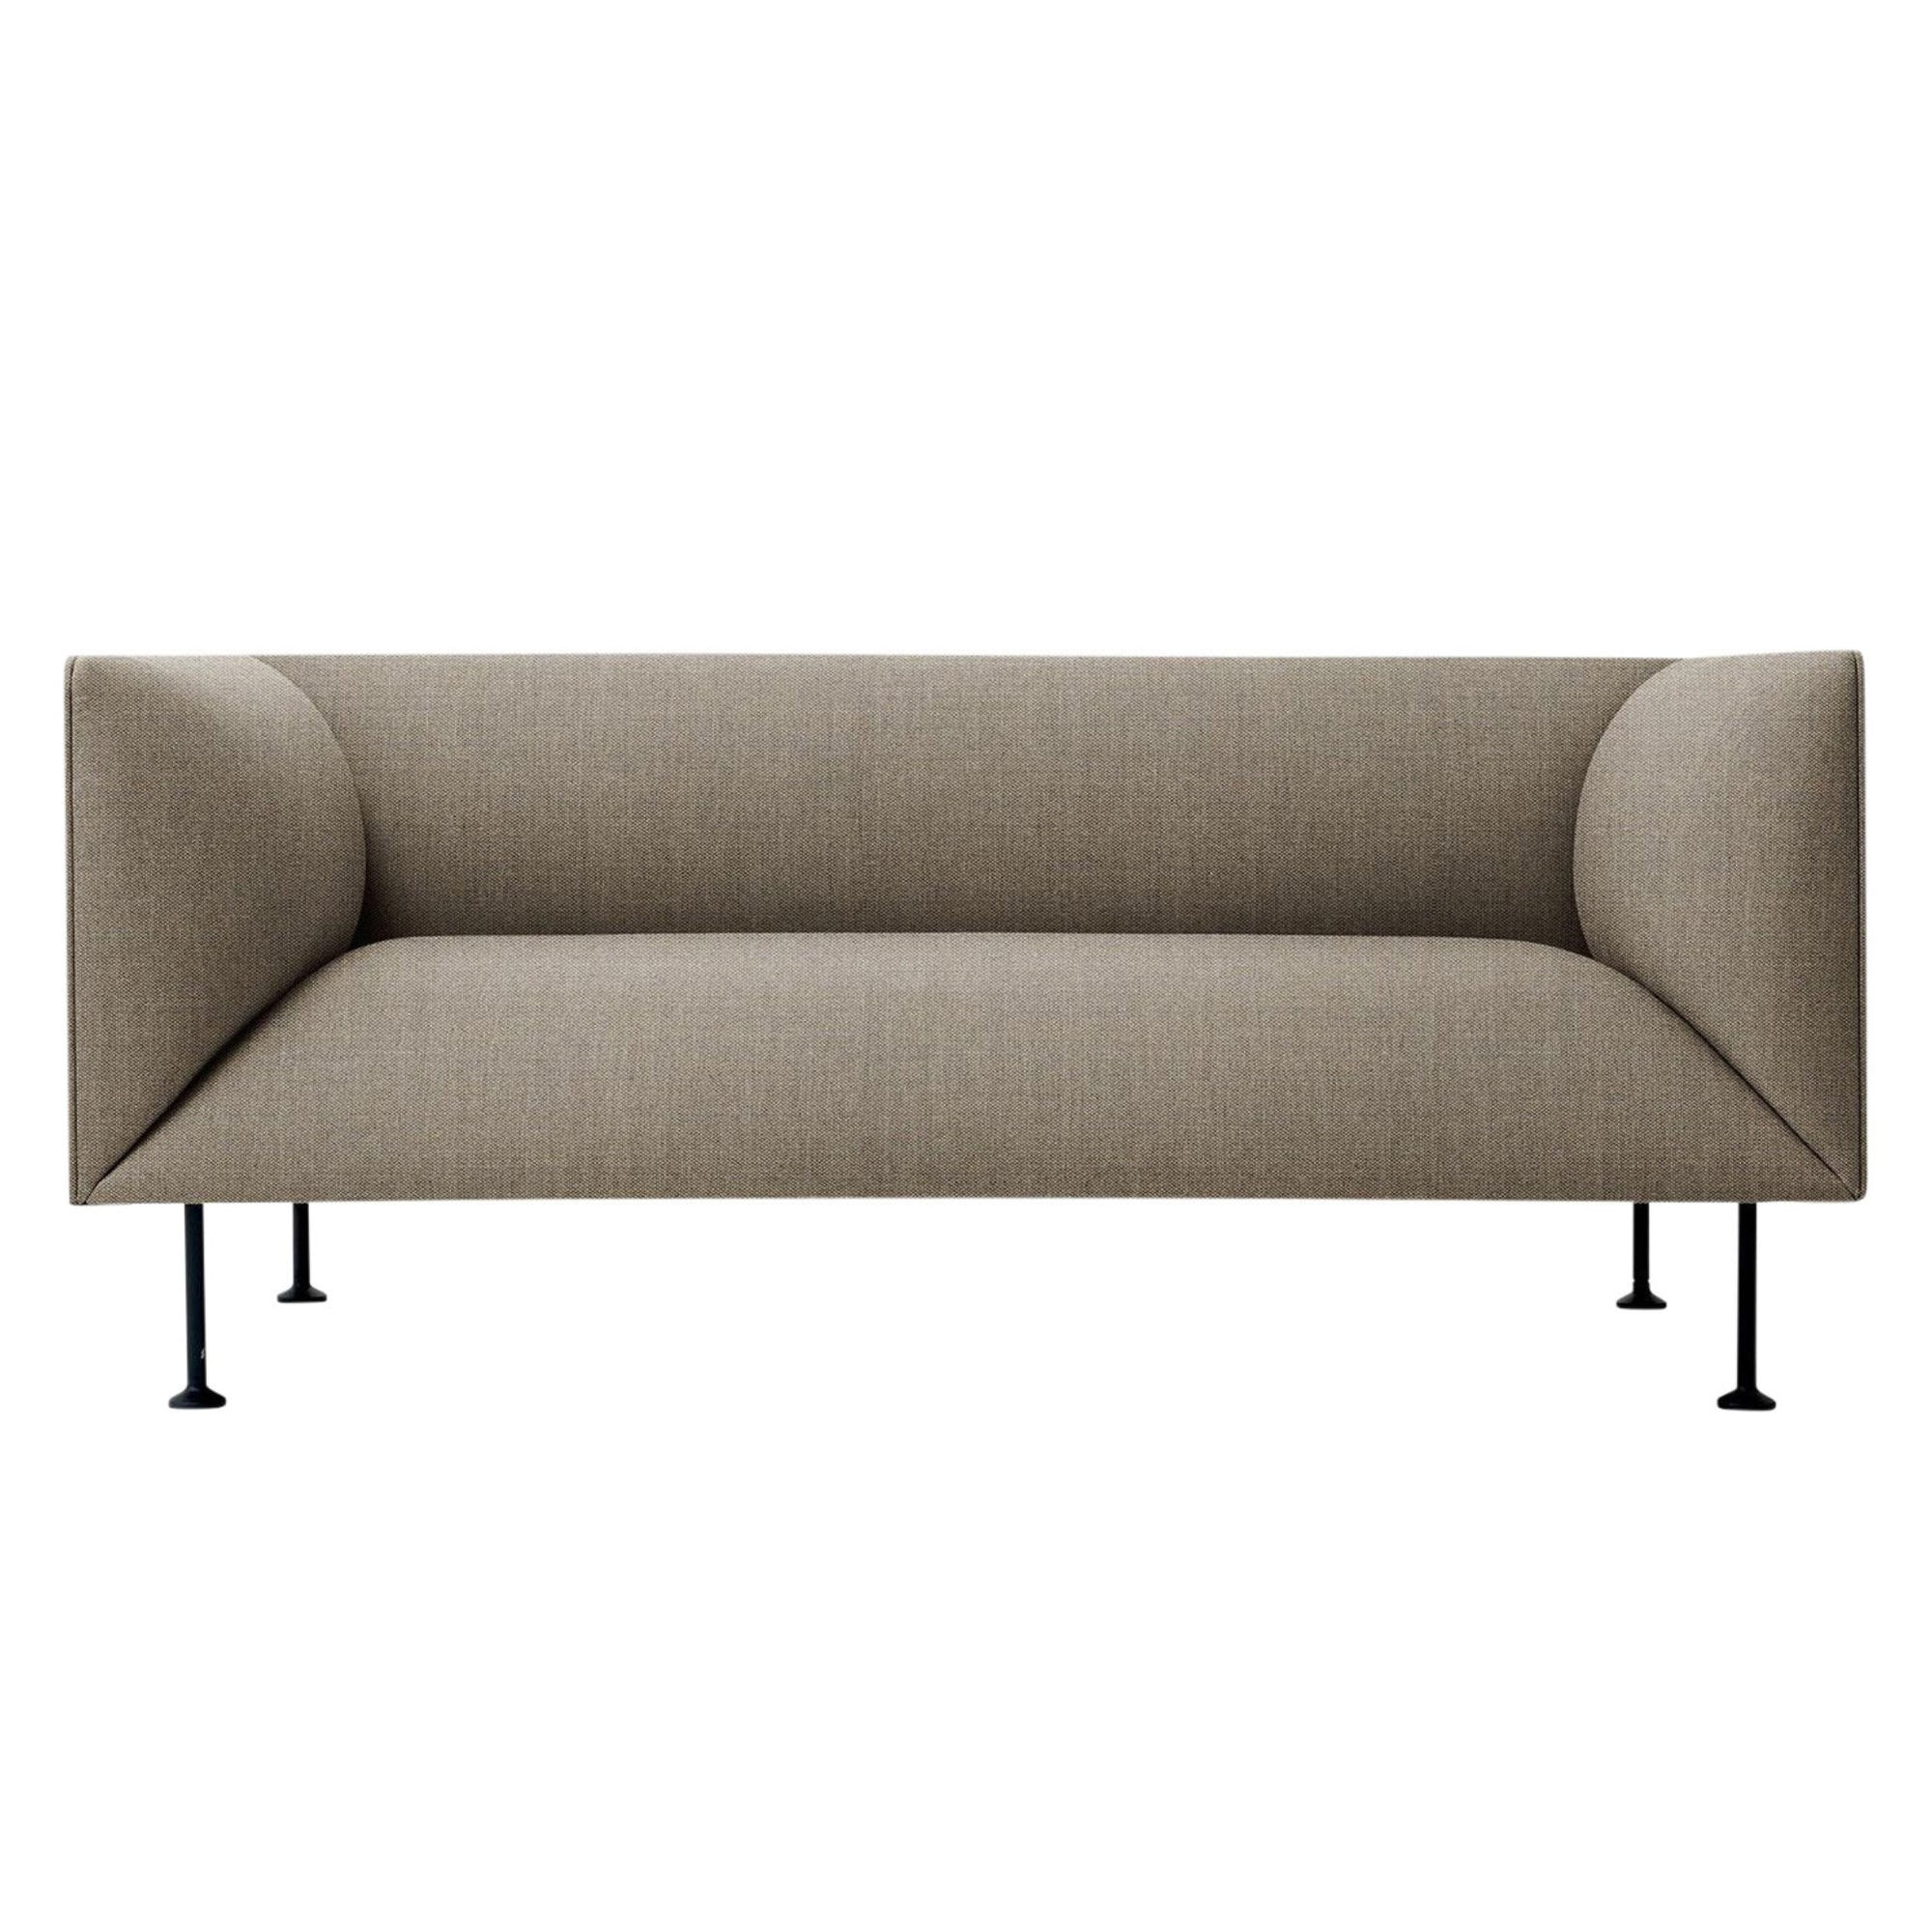 Menu Godot Sofa 2-Seater , Remix2 233